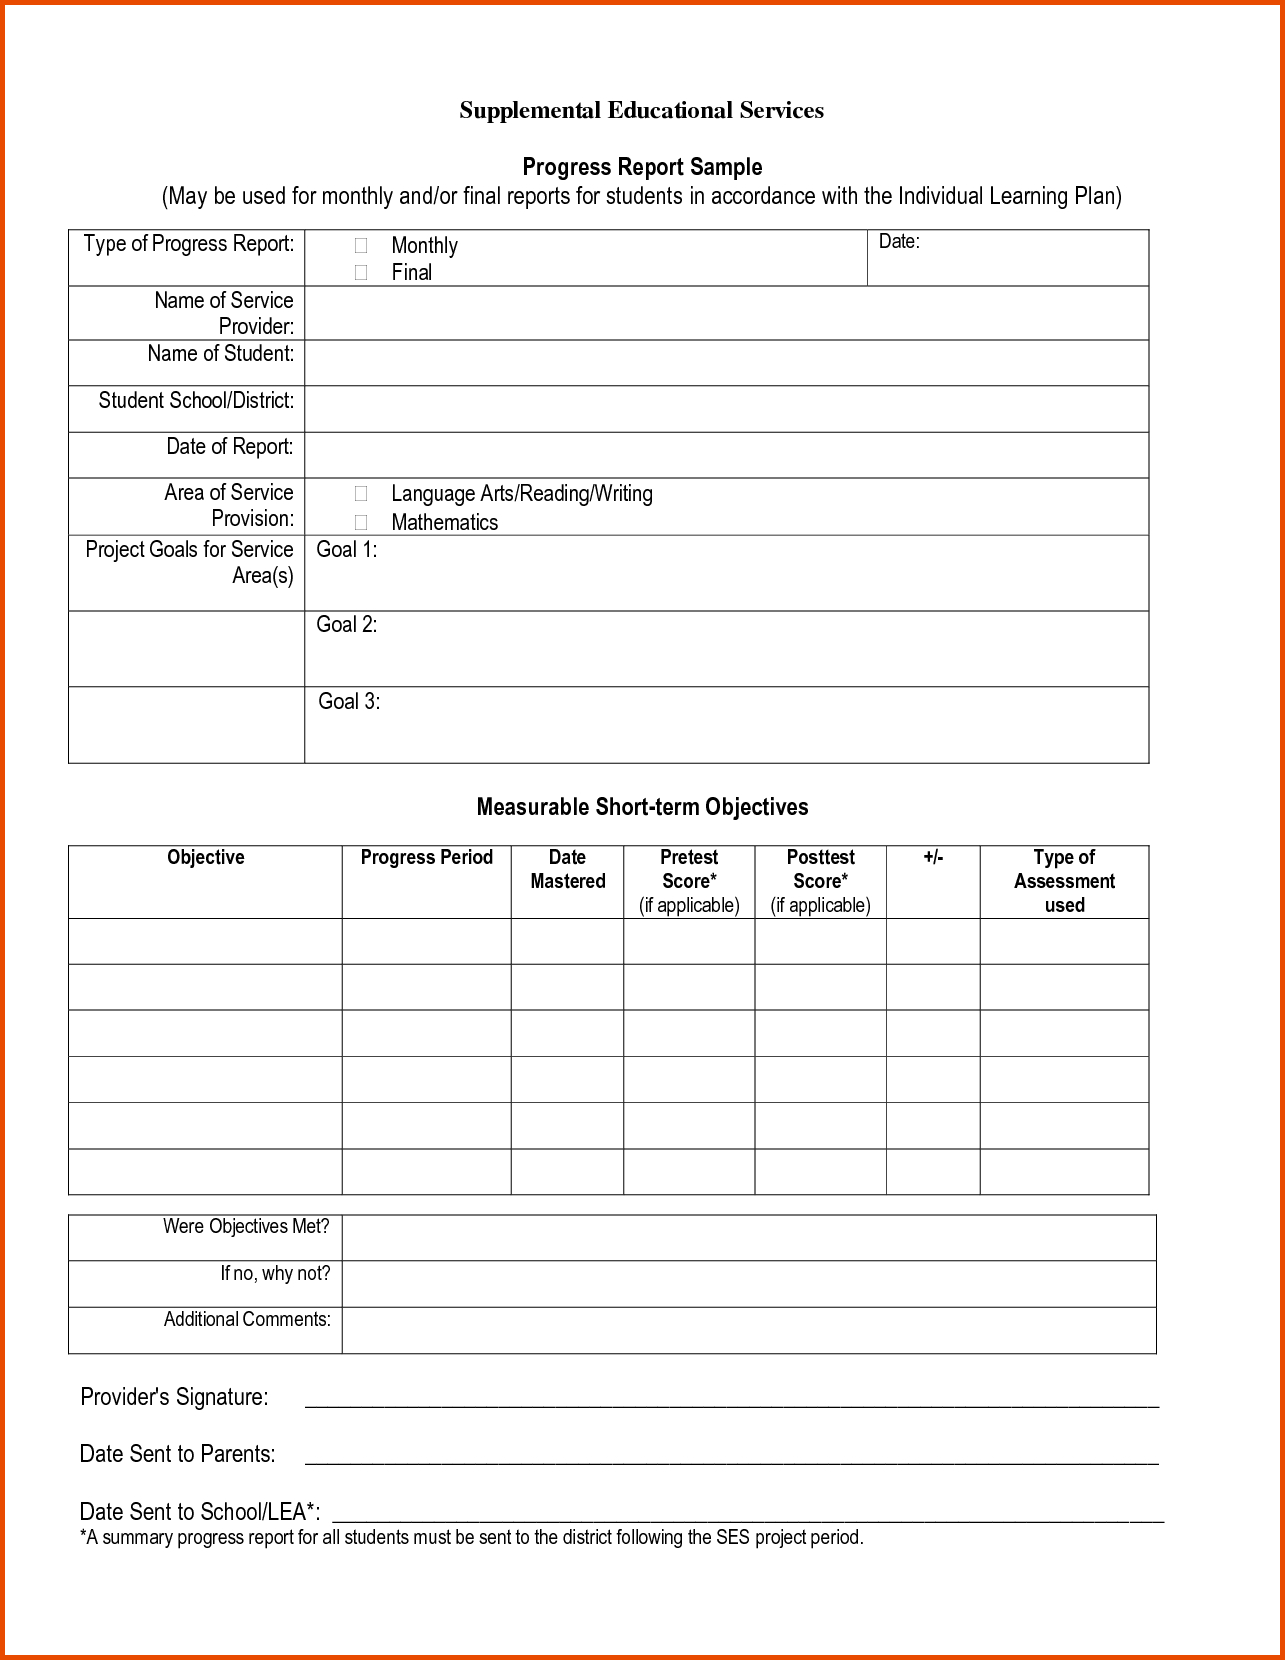 Pinmaricarl Carranza On Sample Progress Report Within Homeschool Middle School Report Card Template